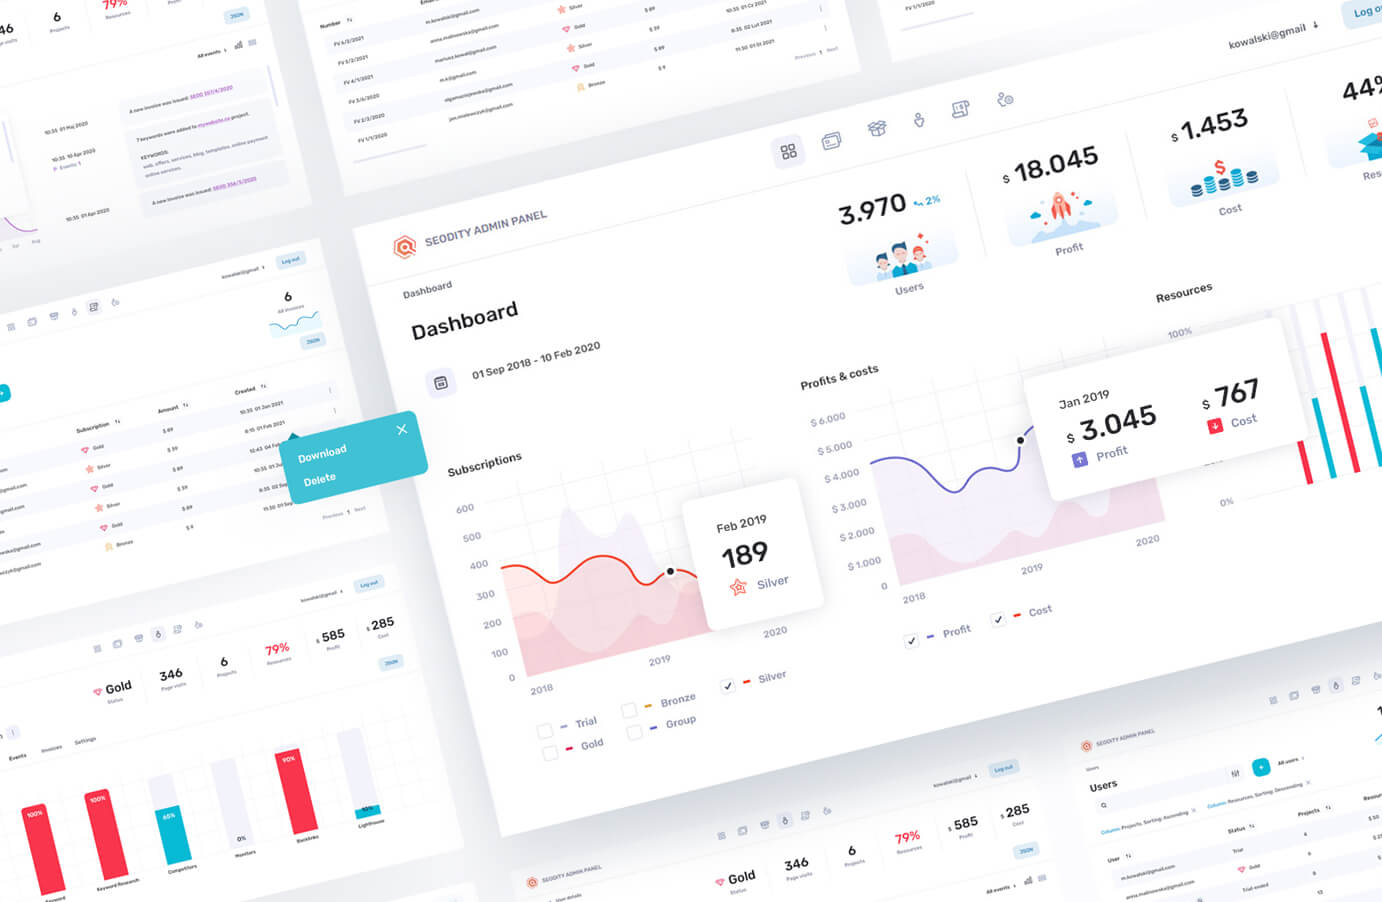 Free admin panel with dashboard view.